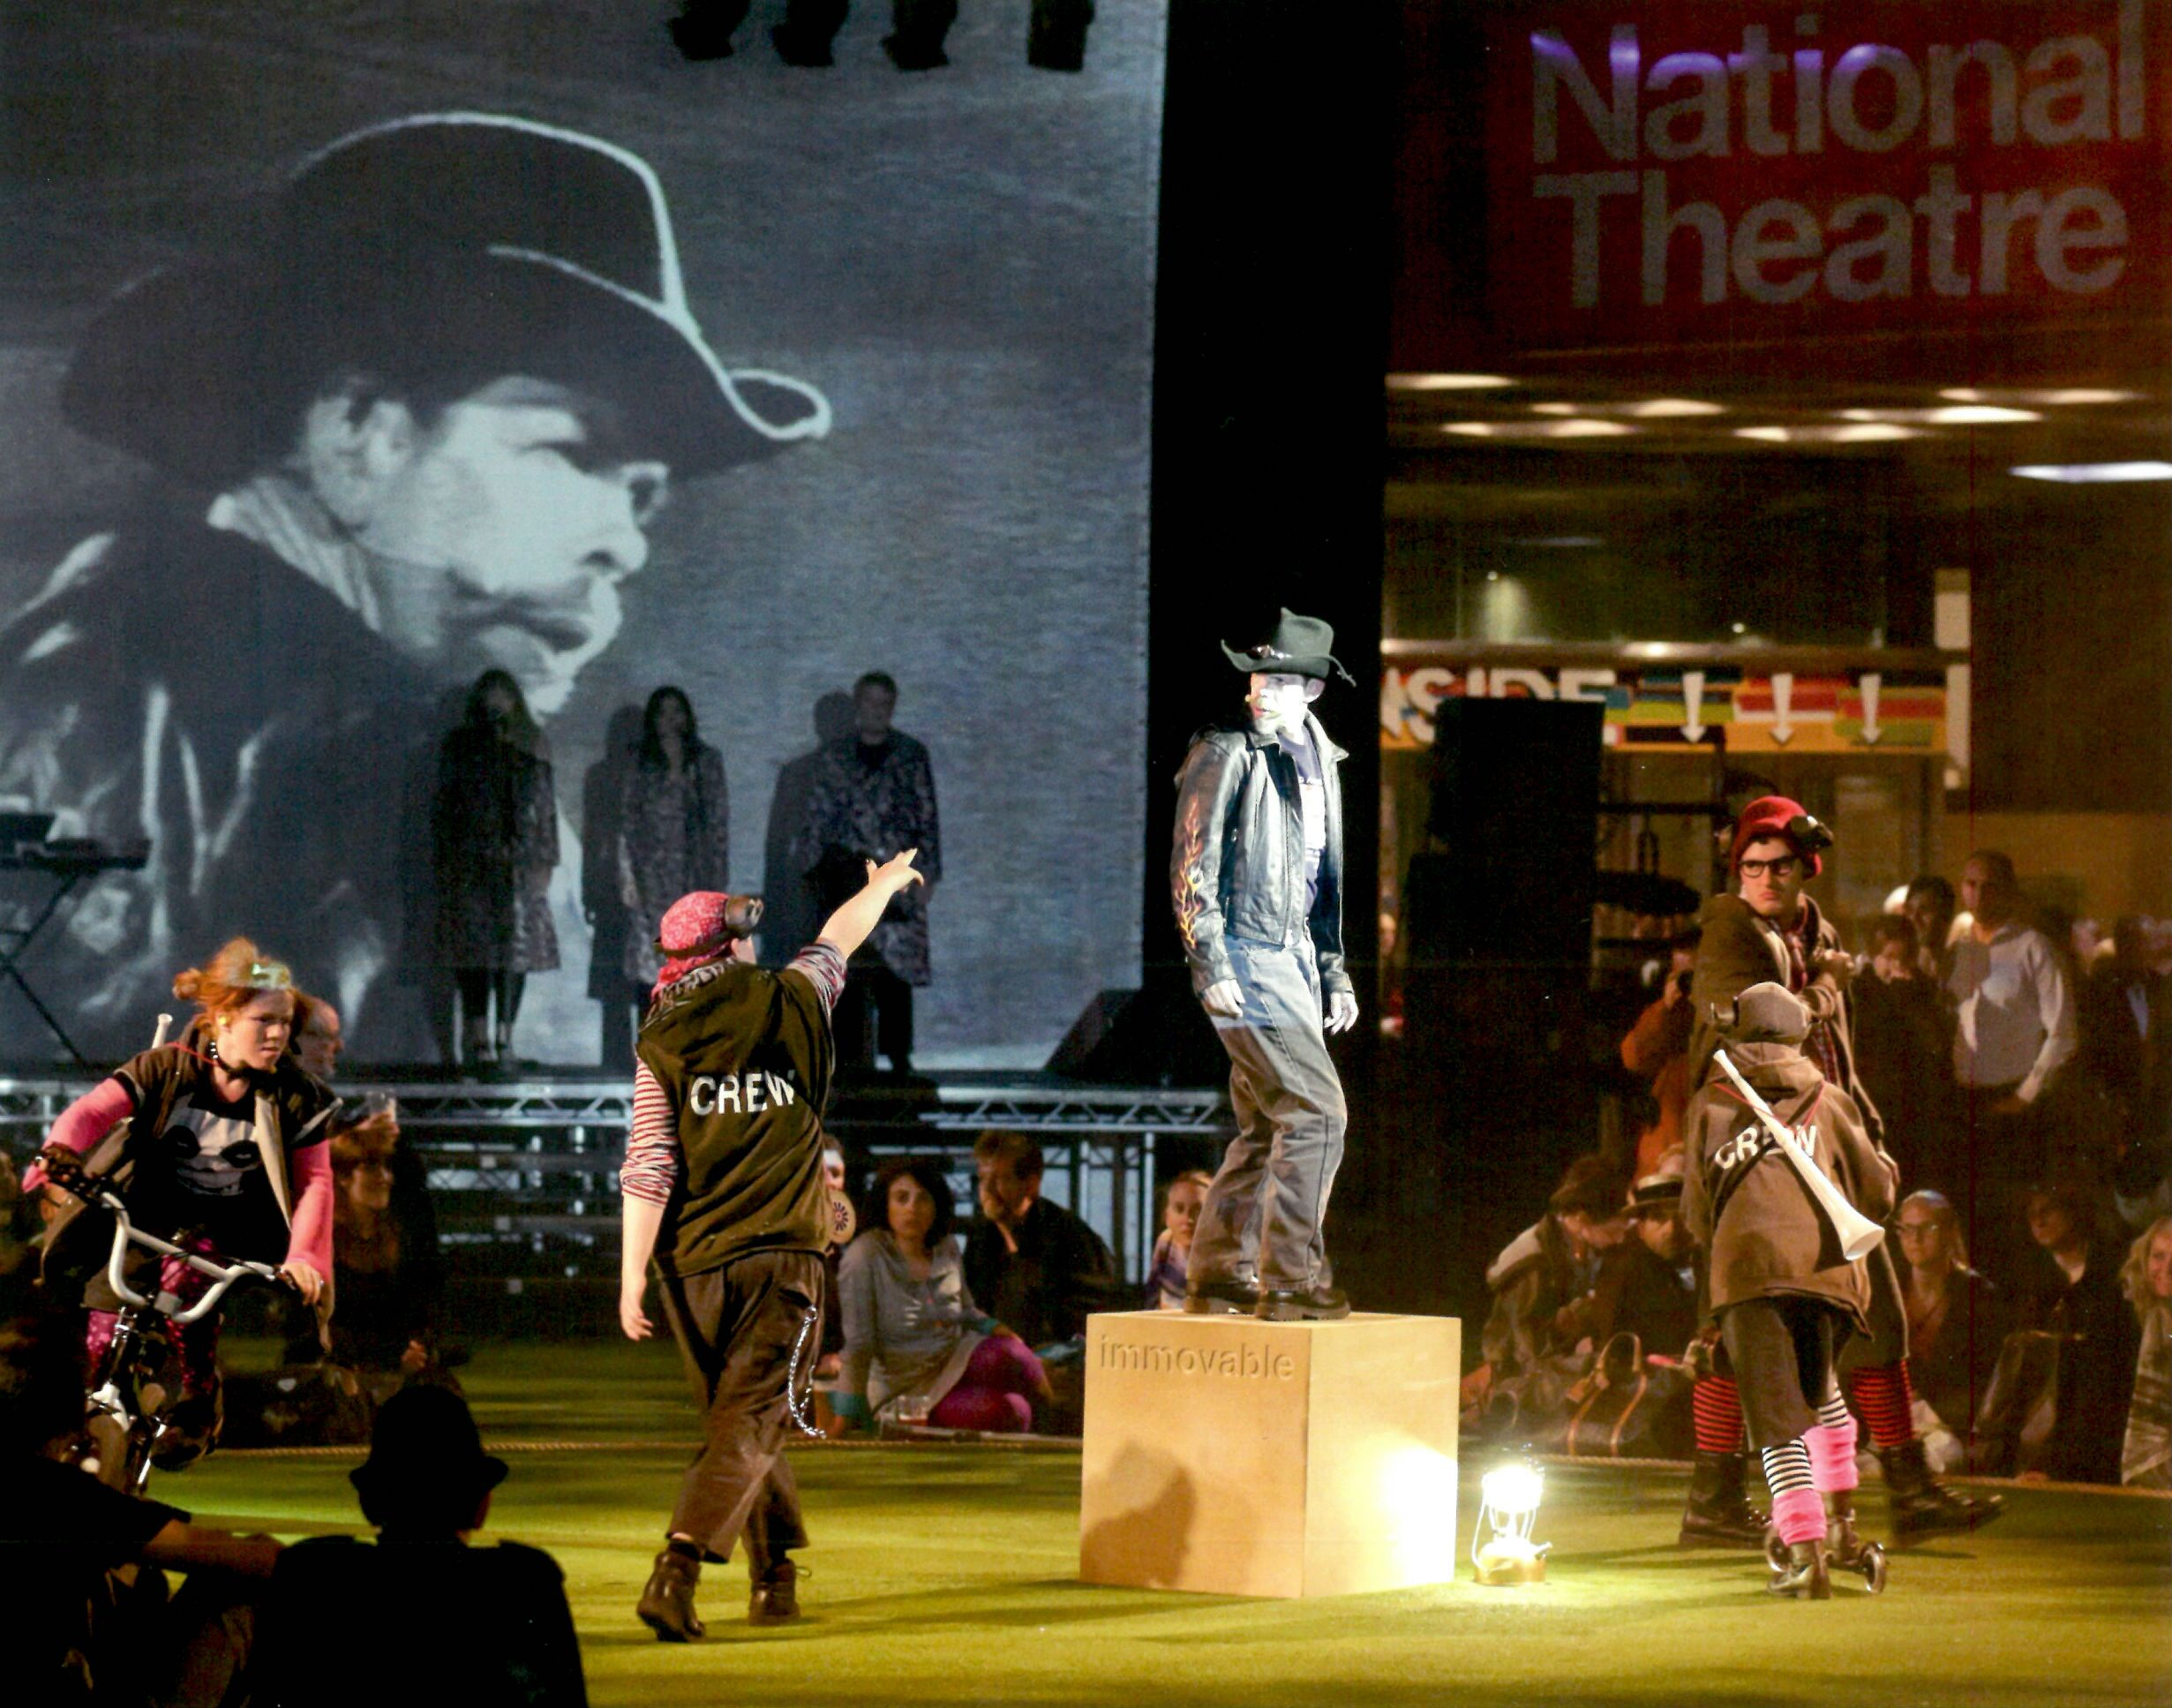 In the centre of a performance space, a man dressed in a black leather jacket, trousers and cowboy hat stands on a cube that says 'immovable' on a green-carpeted floor. He is surrounded by other performers, and beyond them, an audience. The other performers are dressed in a punk-type style and include someone on a bicycle and someone on a scooter encircling him. There is a raised stage behind them onto which a black and white image of a cowboy is projected. Three people stand on this stage as well.